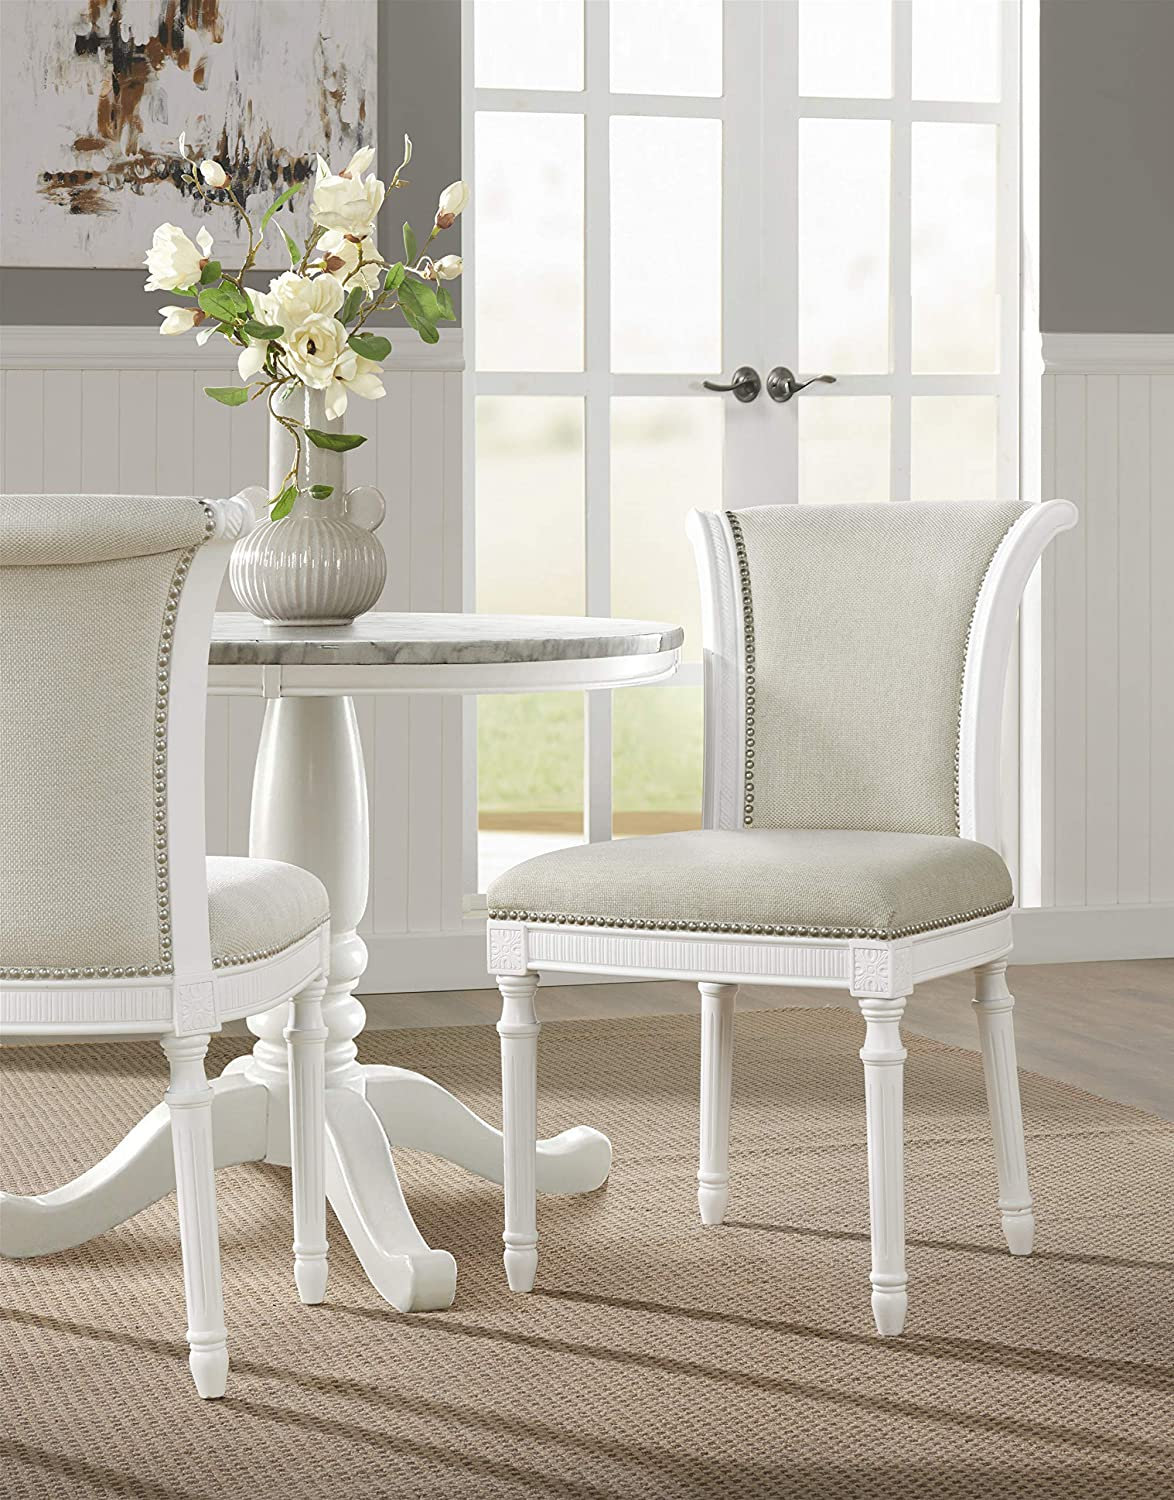 NewRidge Home Goods Chapman White with Upholstered Seat and Back, Set of 2 Dining Chair